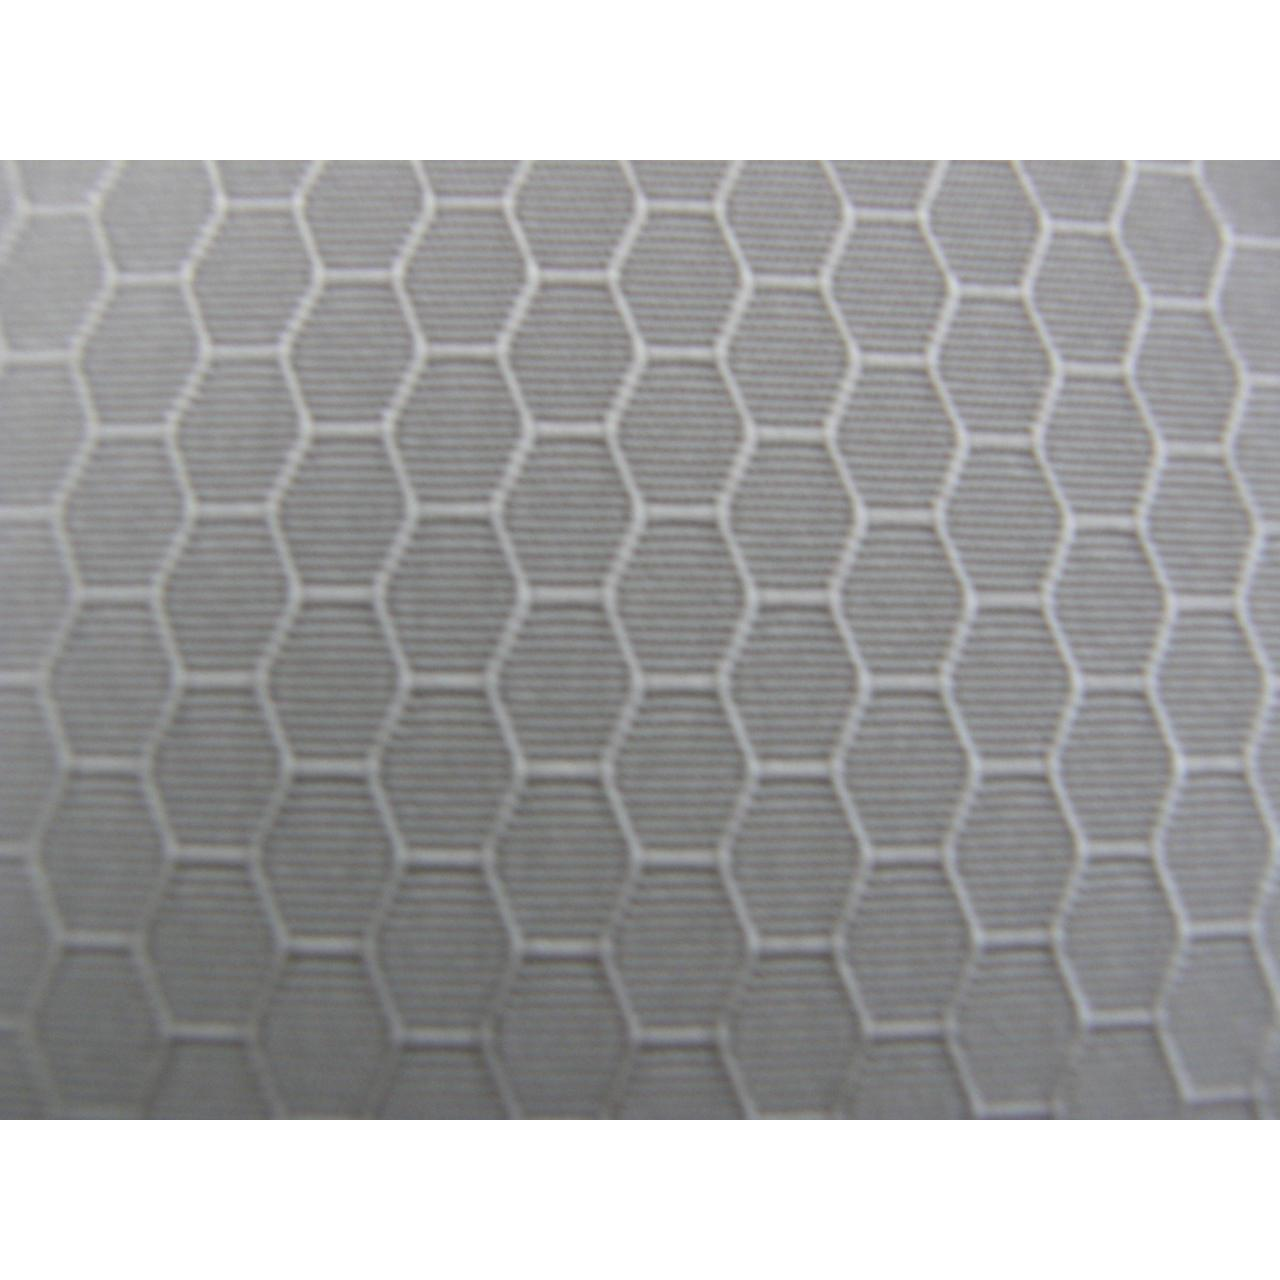 Buy cheap GK-110 N210D HONEY-COMB PU/CT 223GSM from wholesalers